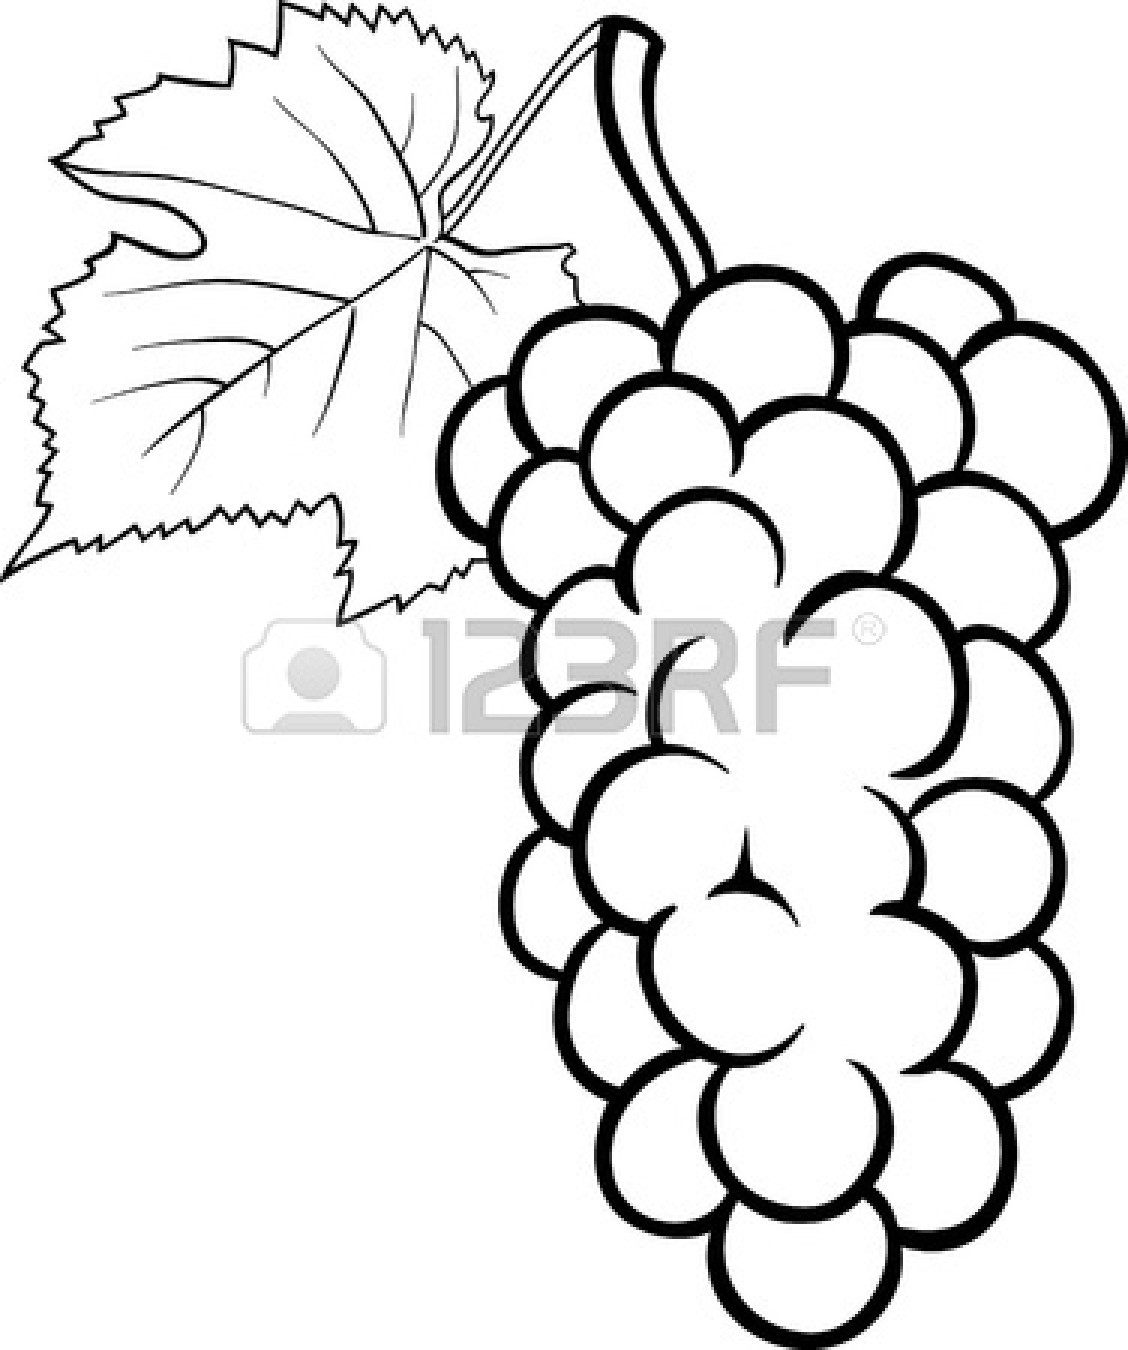 1128x1350 Fruits Amp Vegetables Clipart Black And White